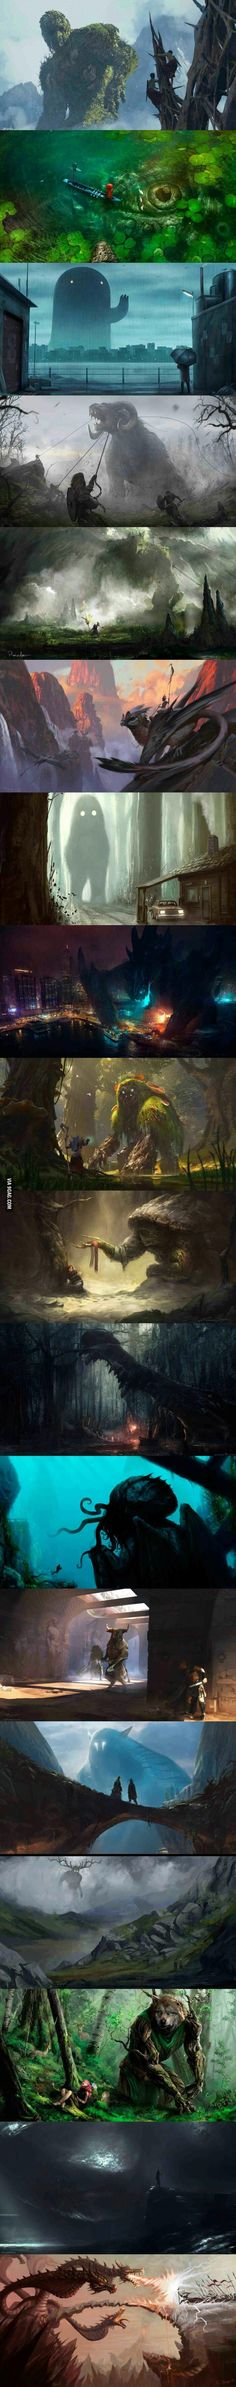 Beautiful art of some mythical creatures